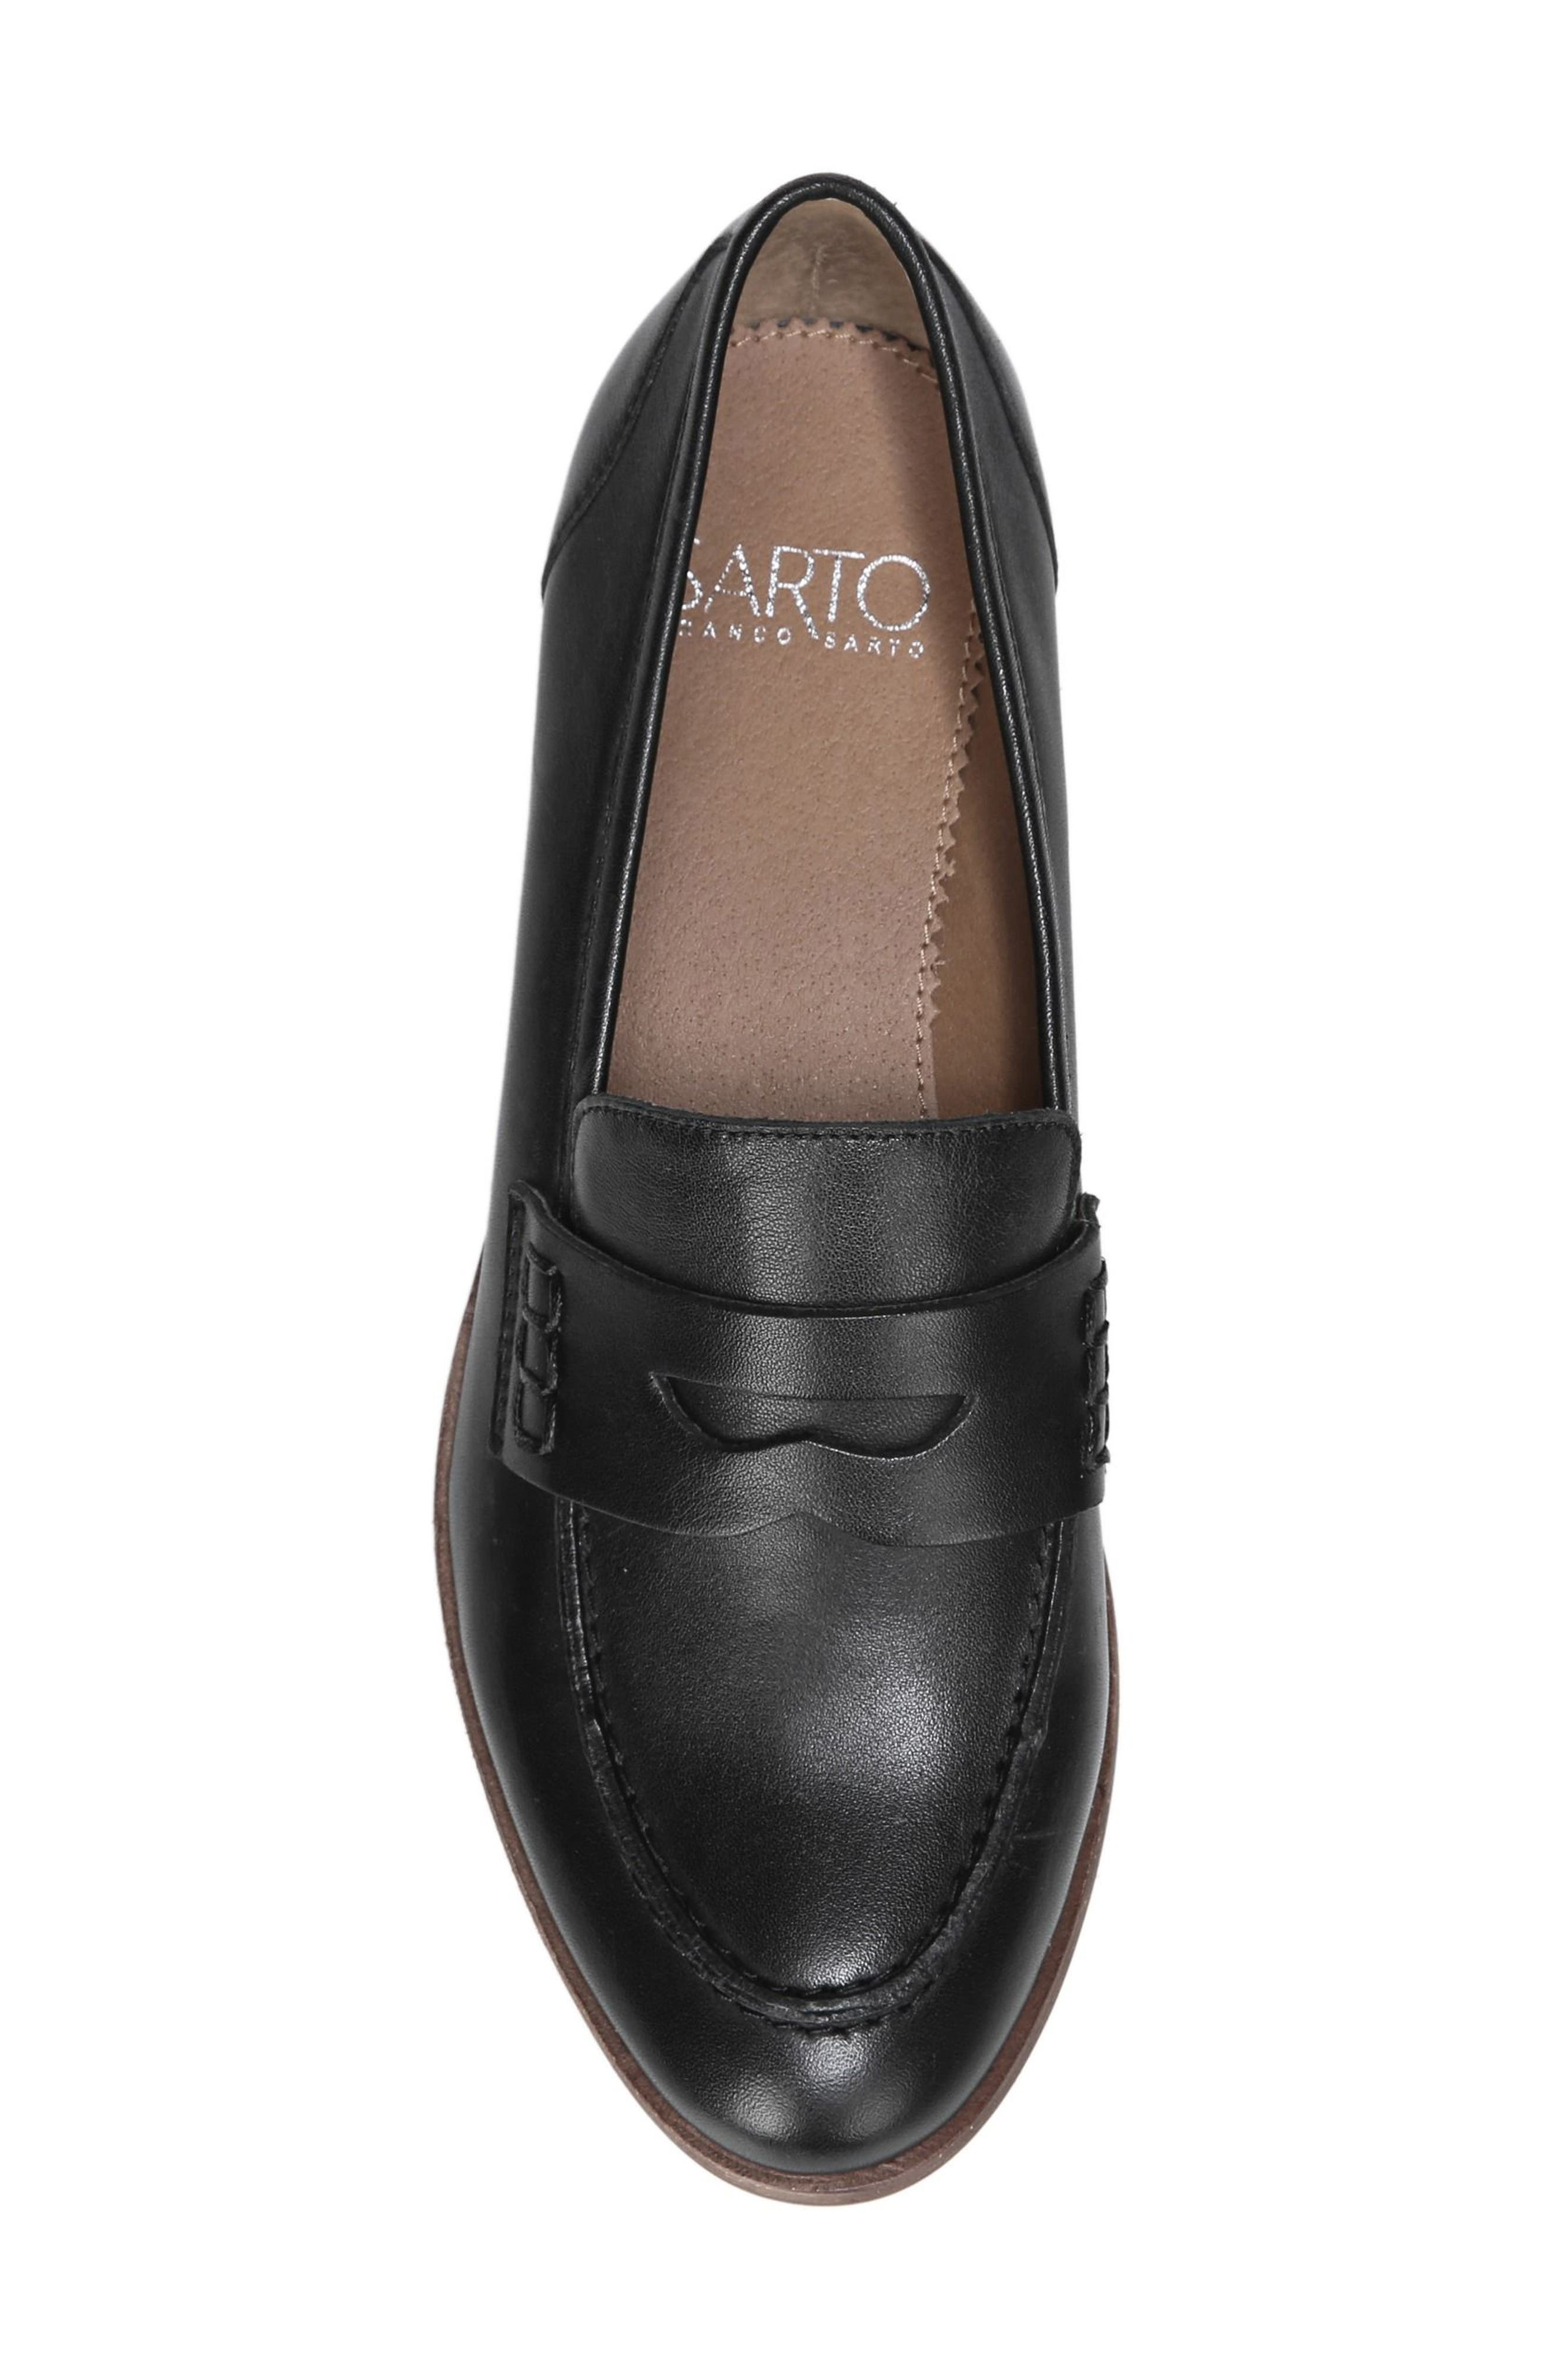 SARTO BY FRANCO SARTO, 'Jolette' Penny Loafer, Alternate thumbnail 5, color, BLACK LEATHER